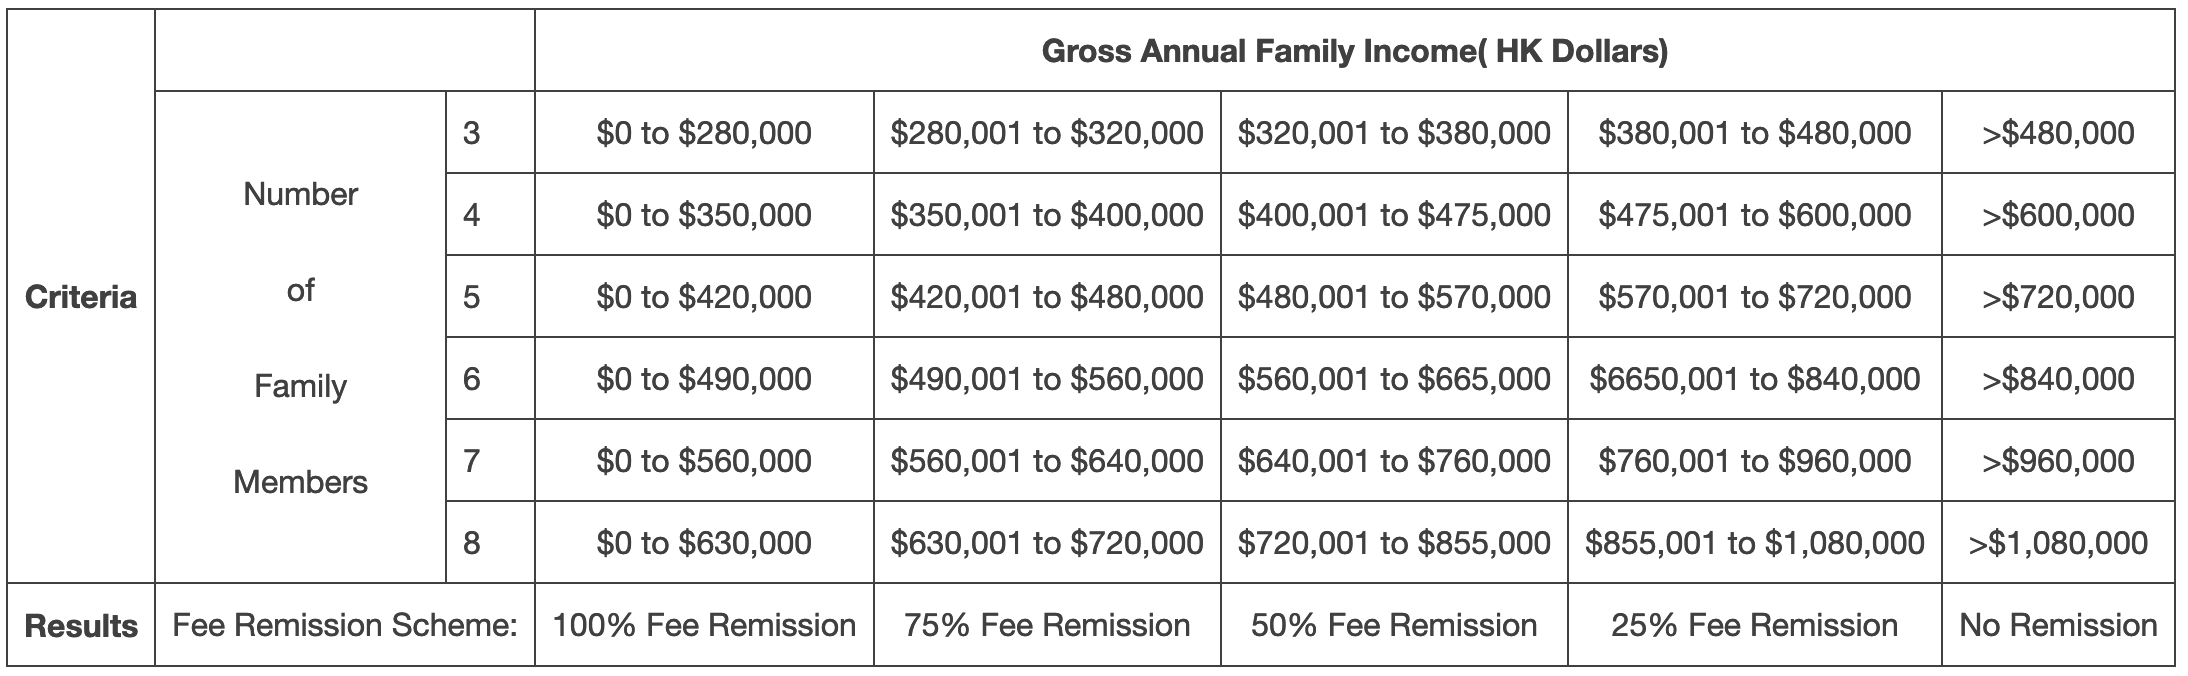 Fee remission percentages